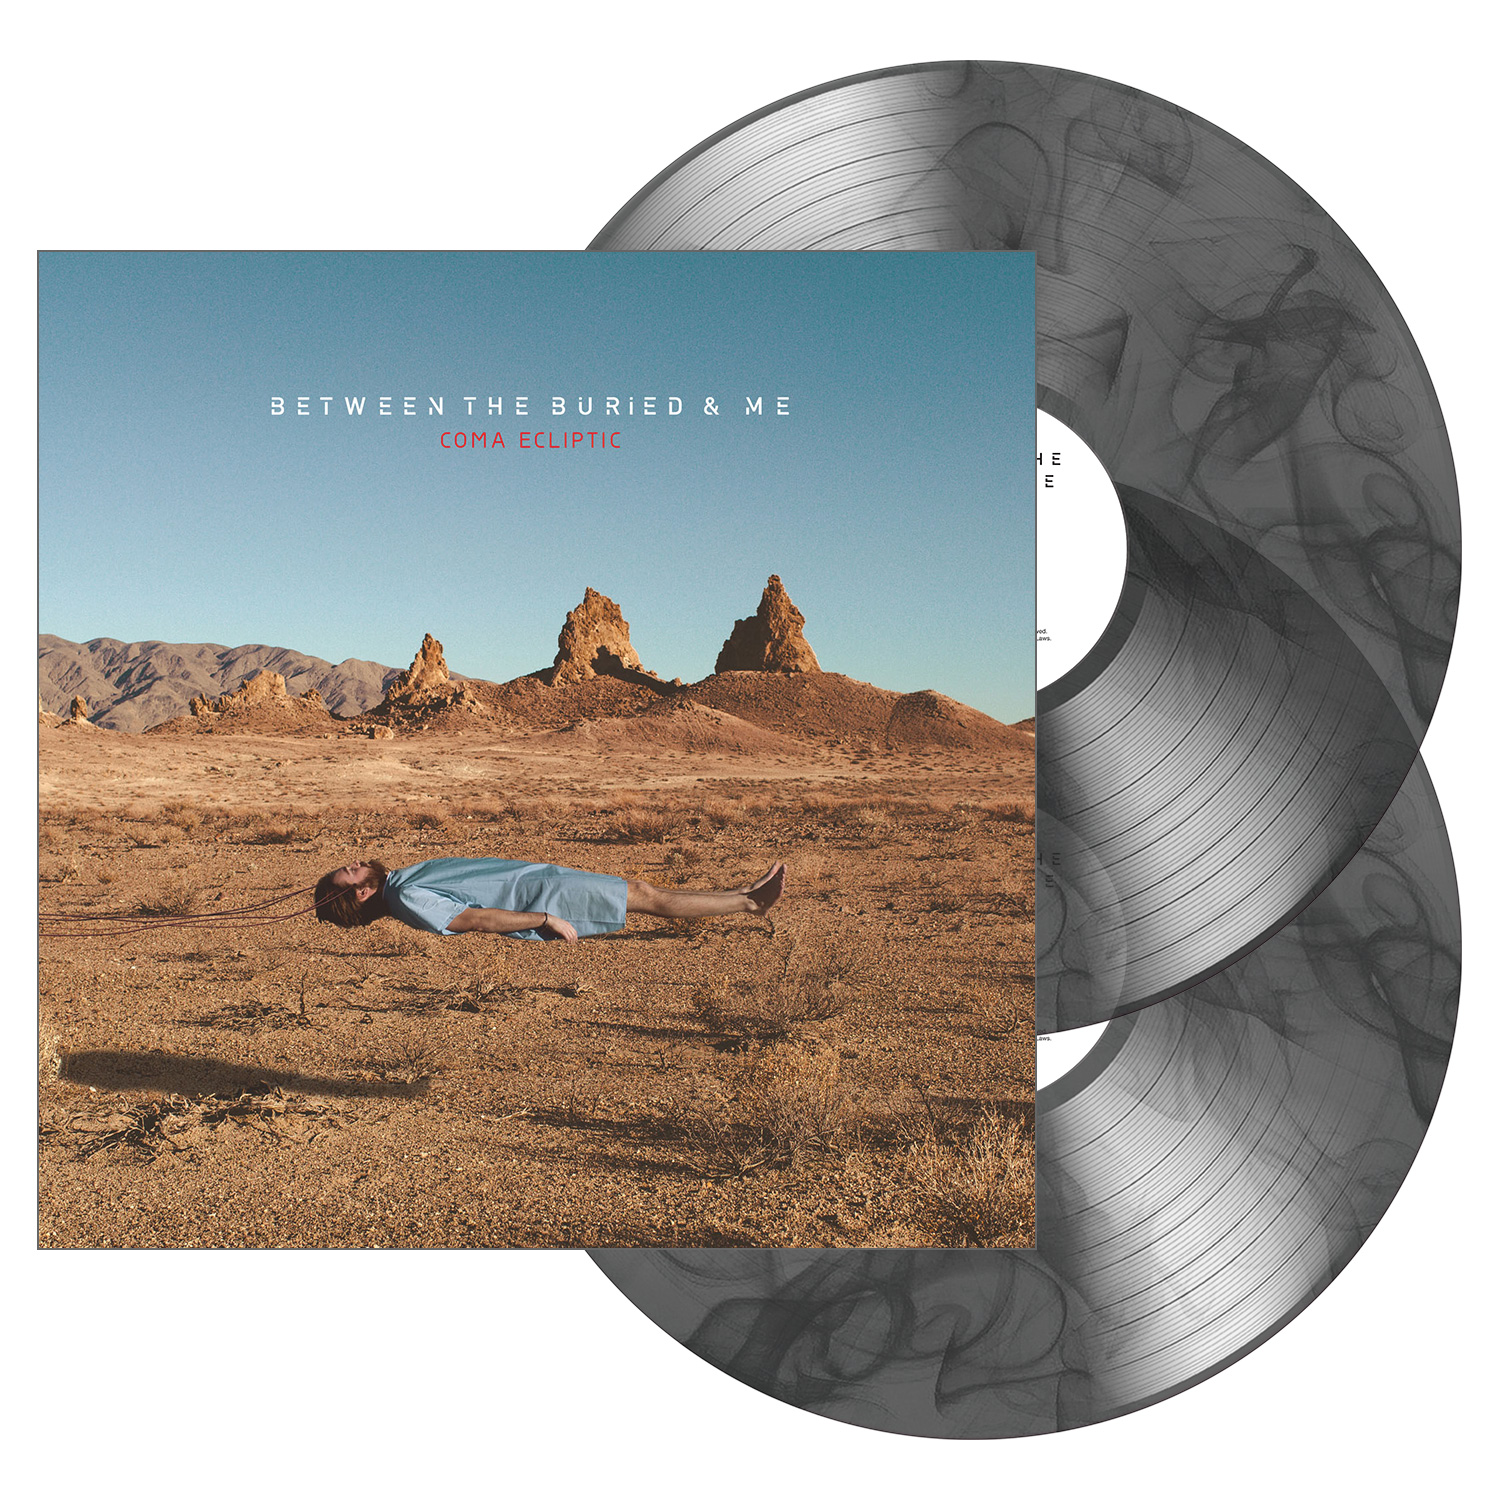 The anatomy of between the buried and me 5131677 - follow4more.info